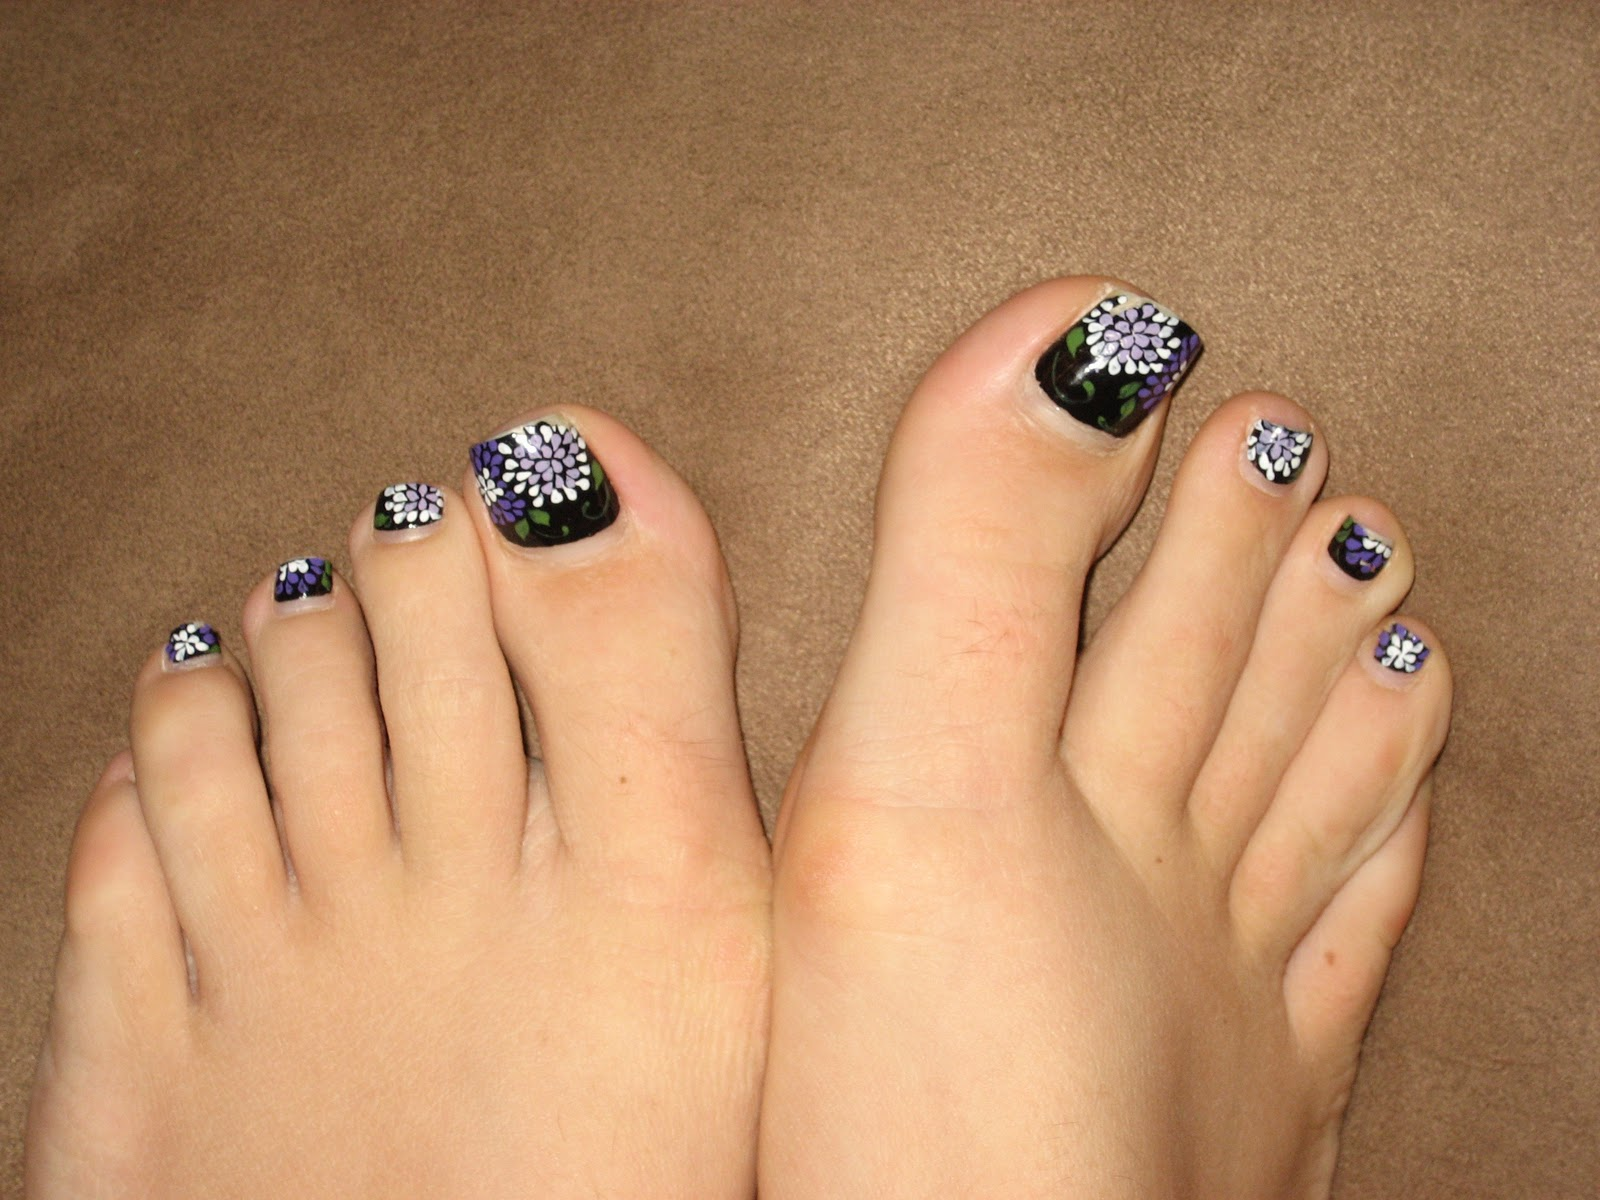 Toe Nail Designs with Palm Trees